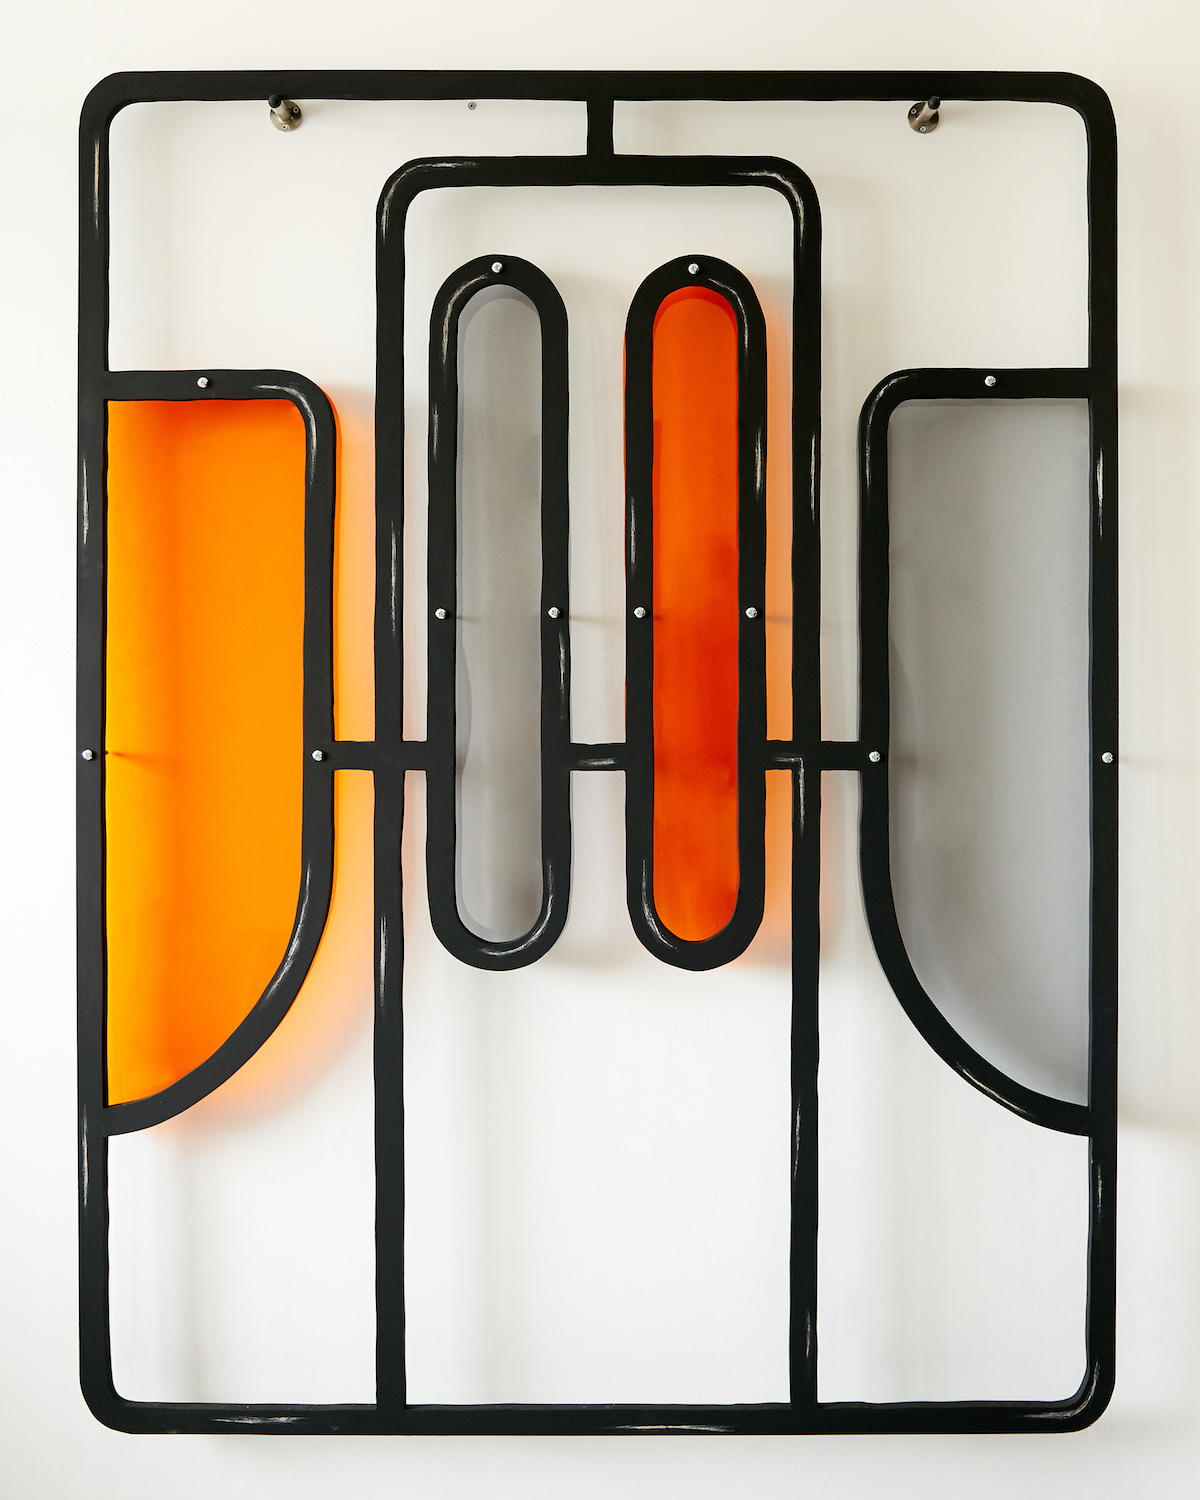 Milly Peck, Alight II, 2020. Emulsion on wood, perspex, coloured pencil, bolts. 161 x 122 x 7 cm.